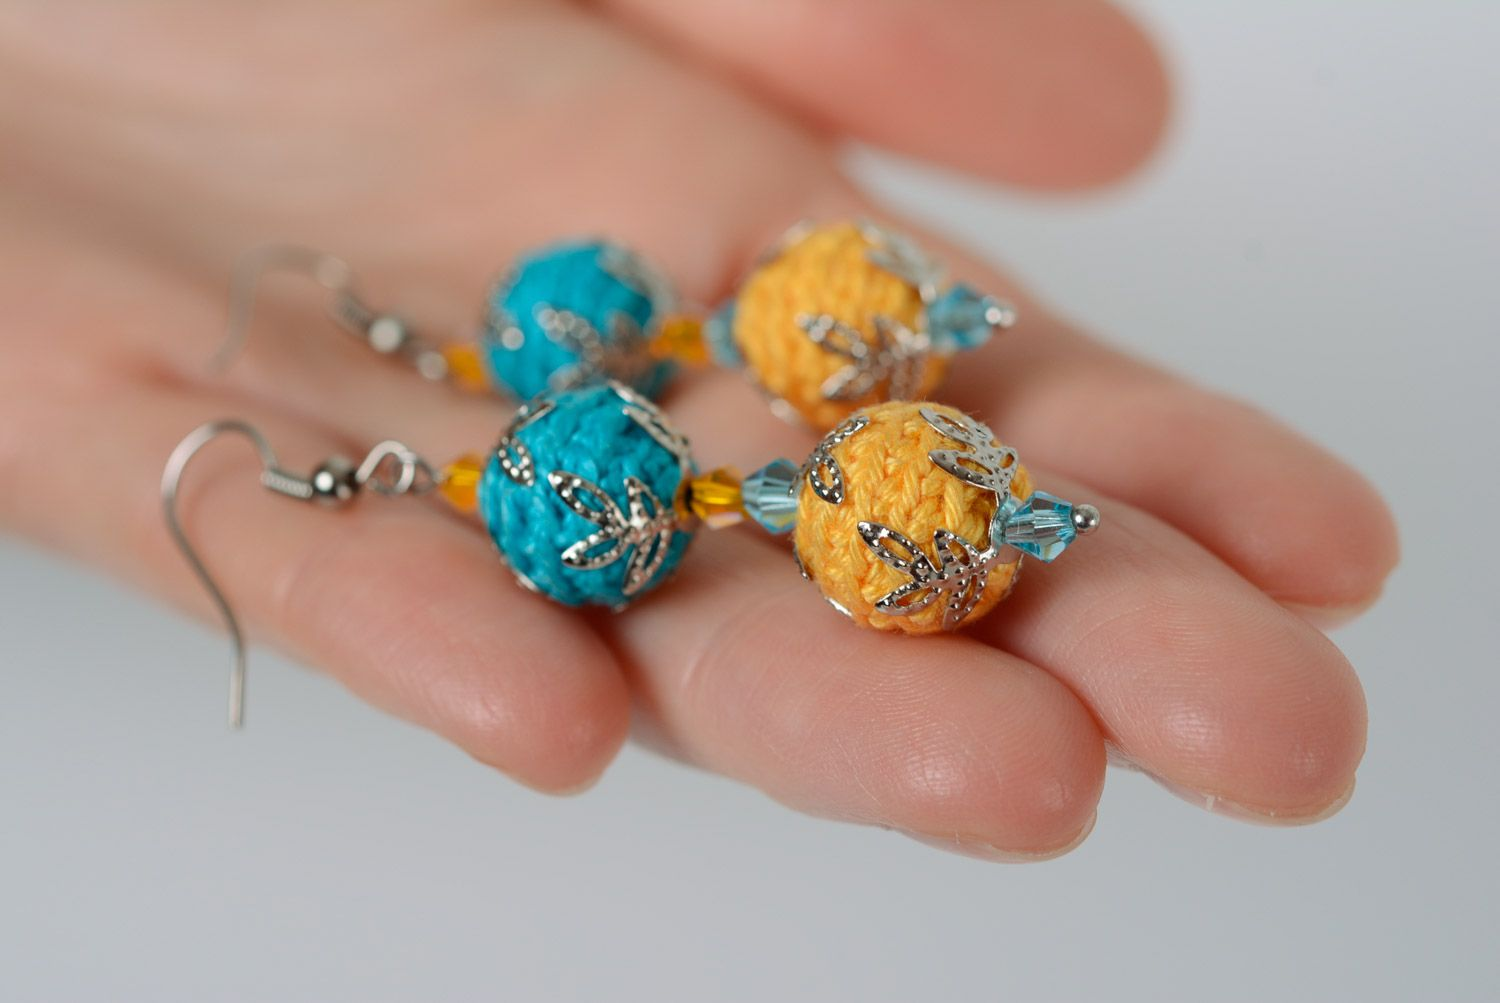 Handmade dangle earrings crocheted of cotton threads of yellow and blue colors photo 2